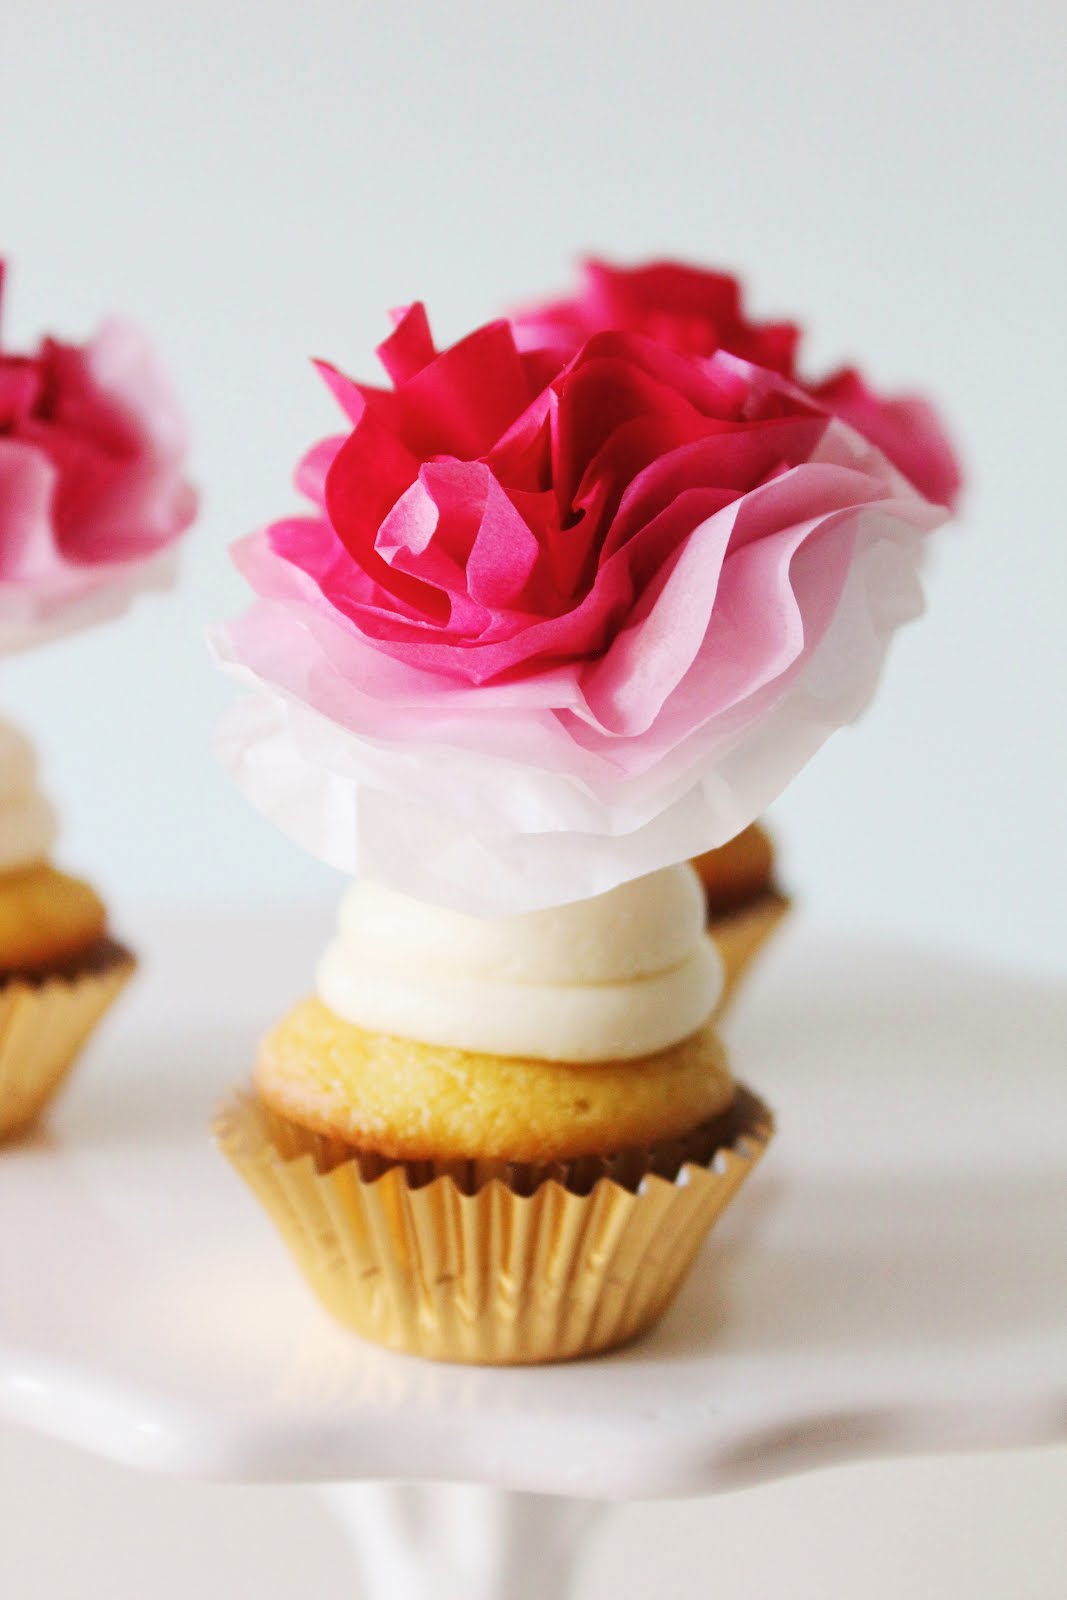 Icing designs diy ombre tissue paper flowers mightylinksfo